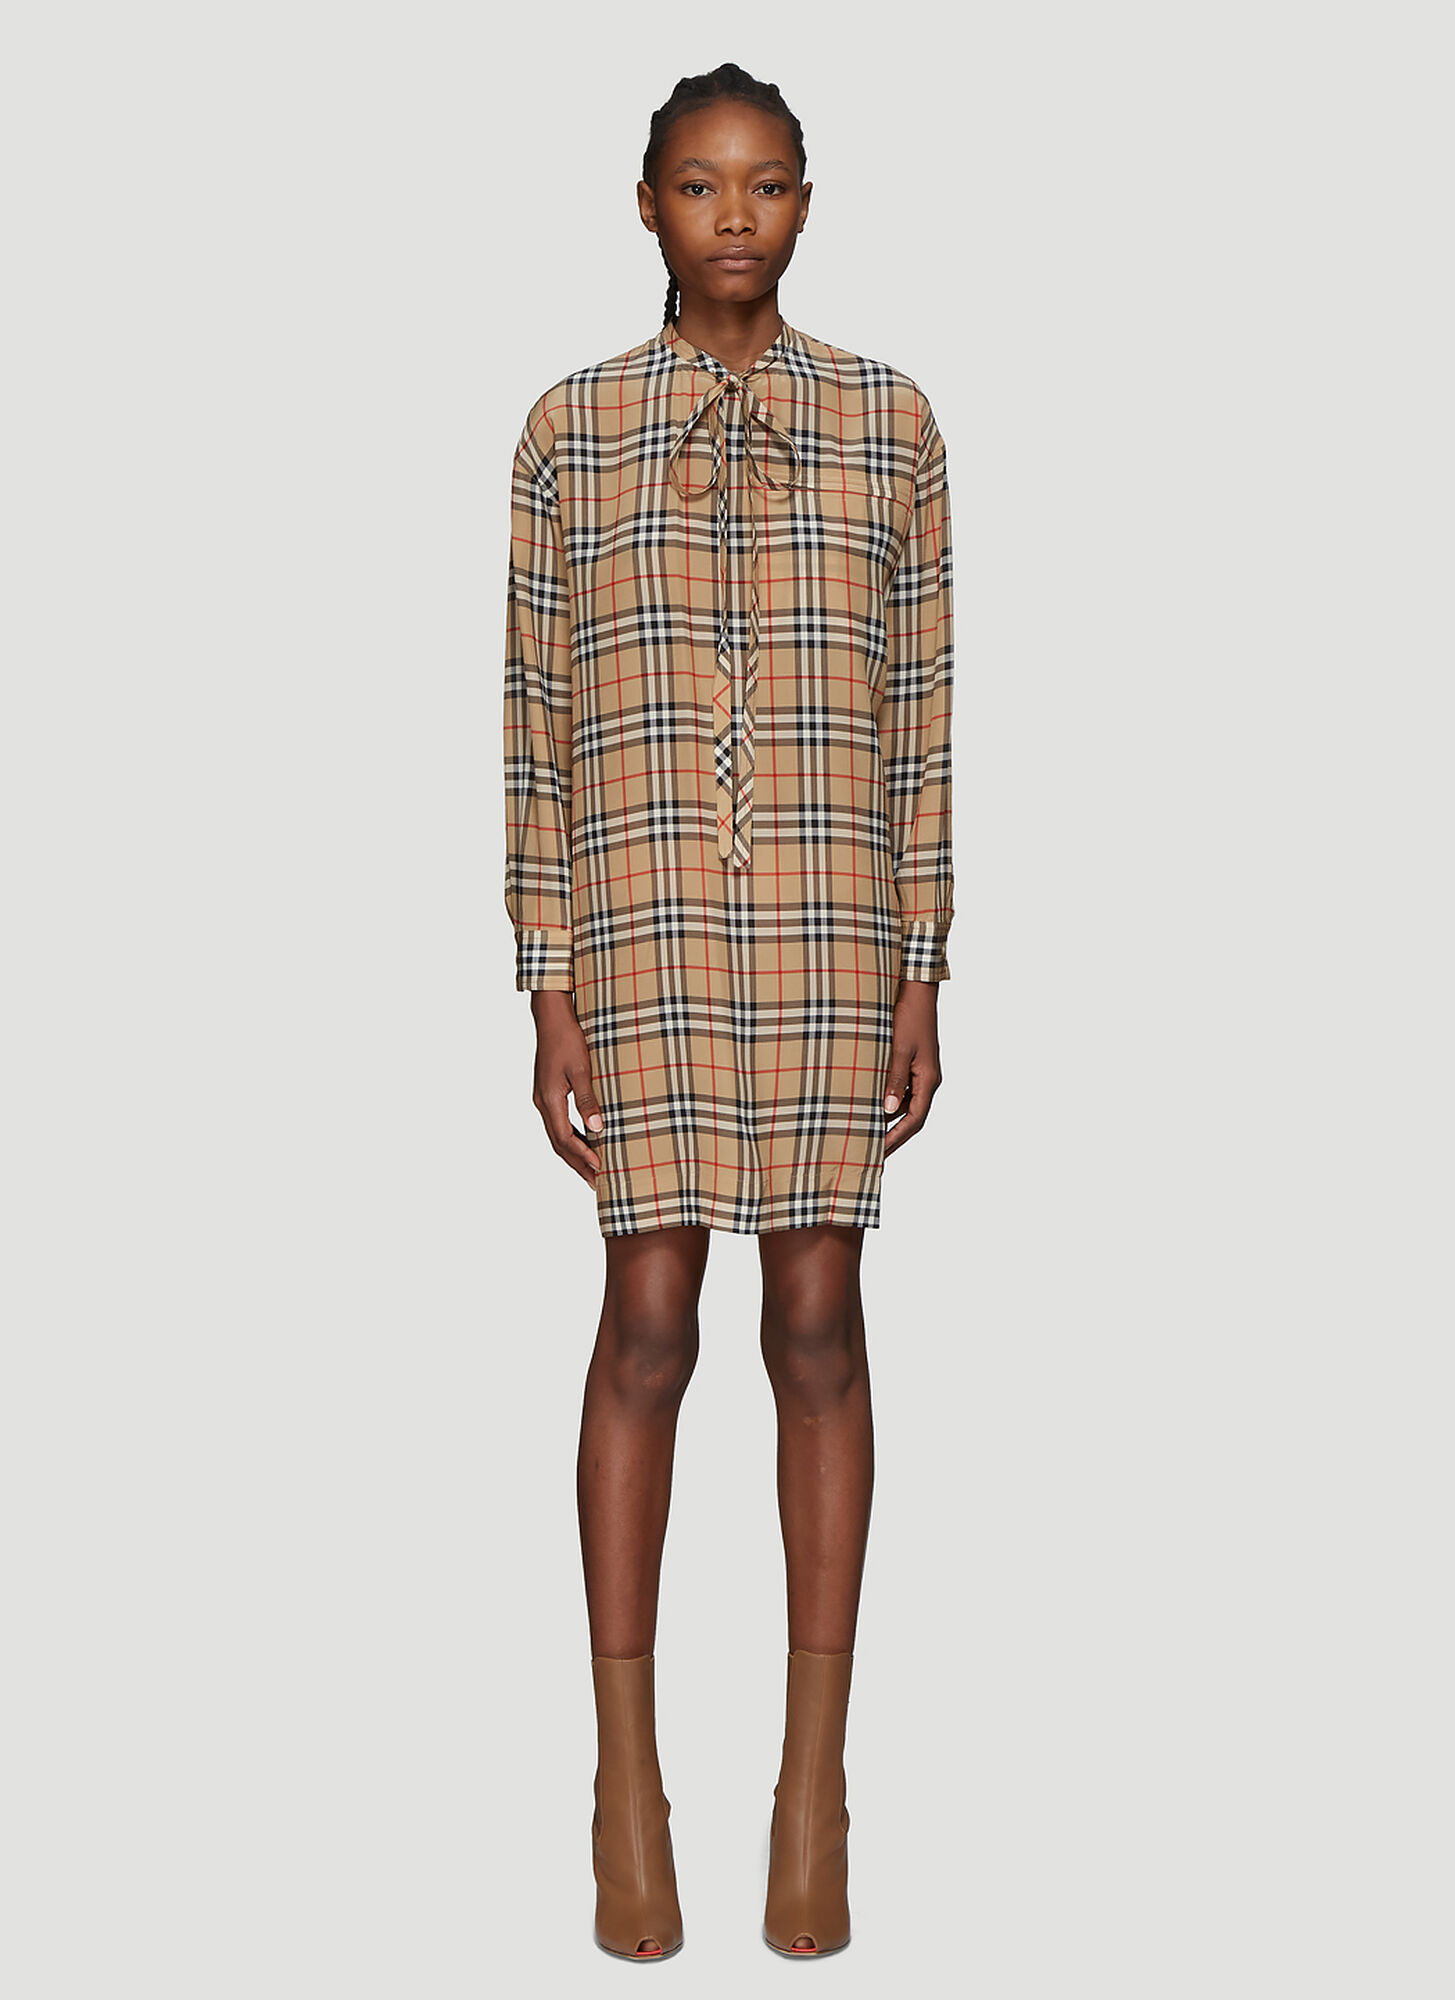 Burberry Vintage Check Tie-Neck Dress in Beige